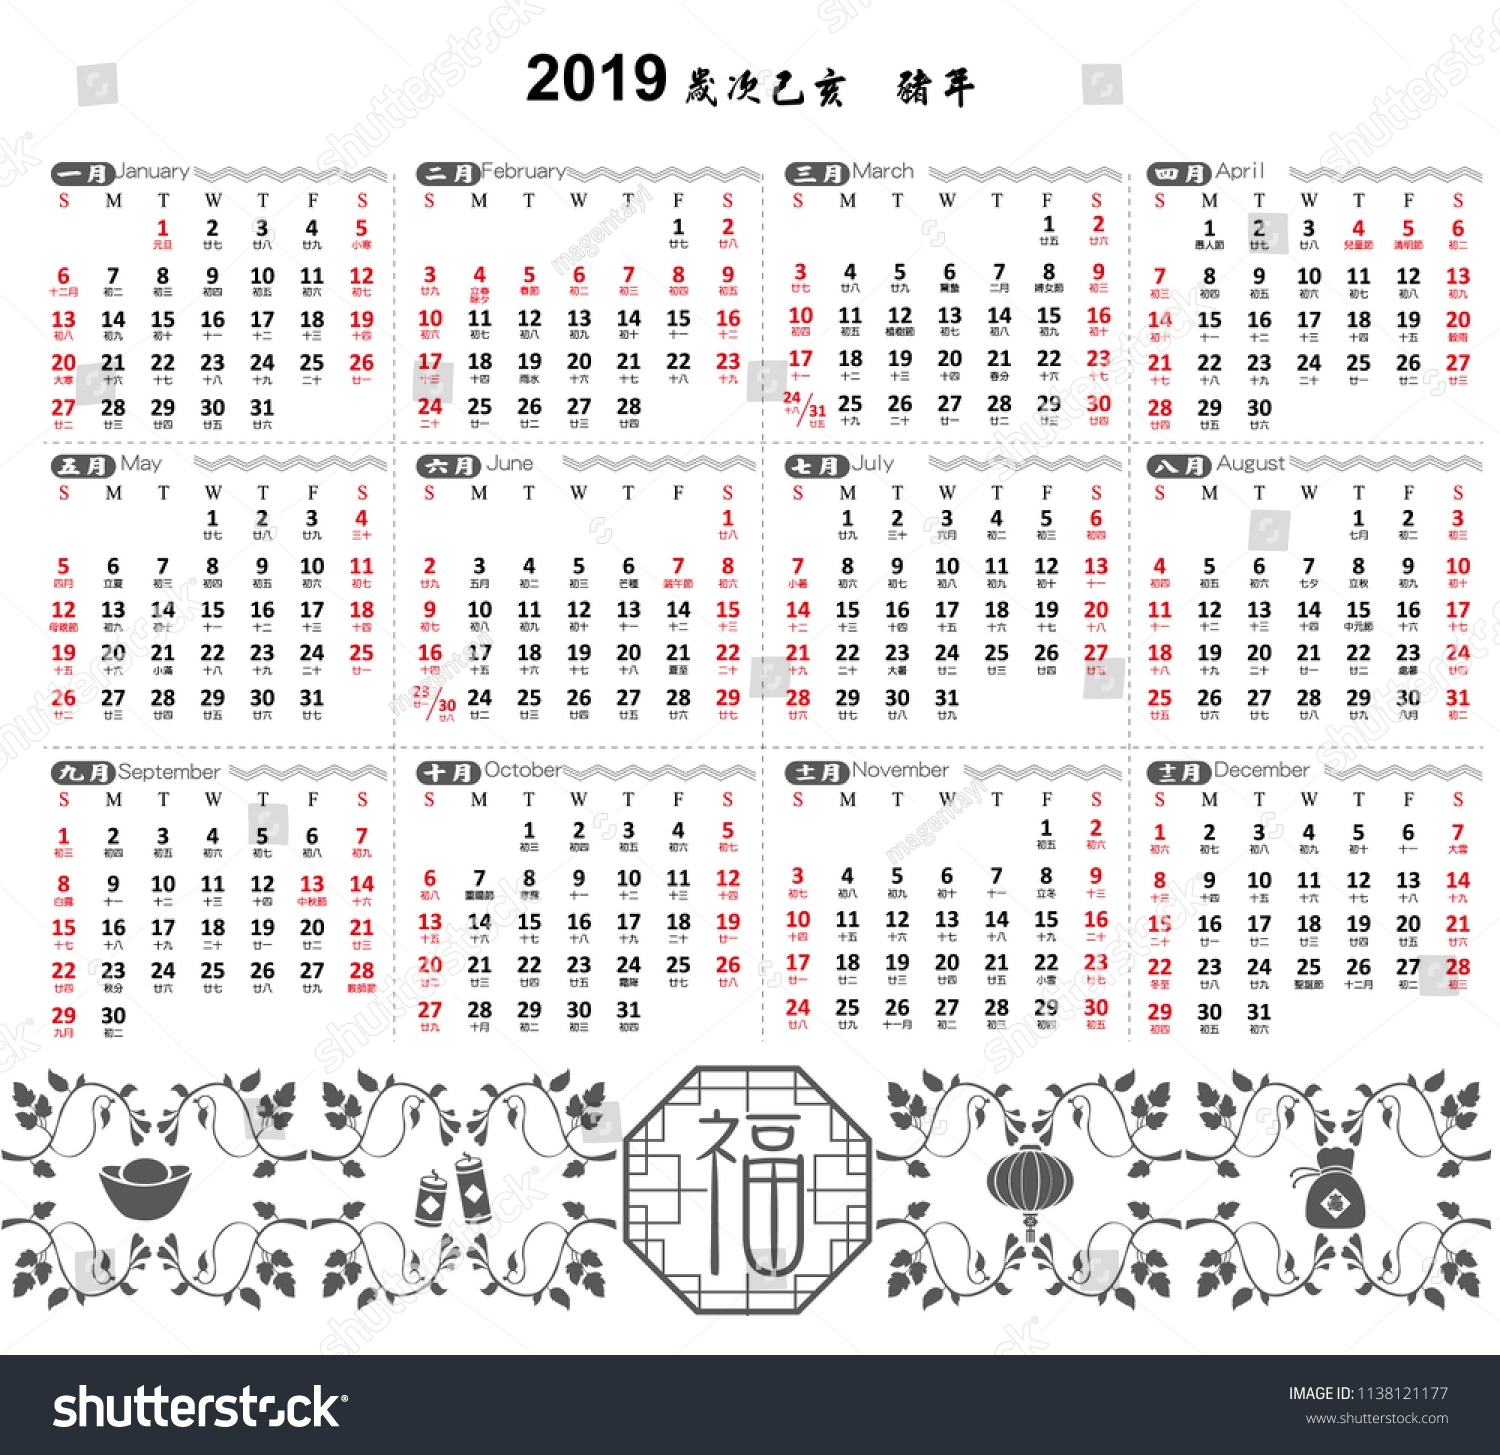 Chinese Calendar Planner Template 2019 Year Stock Vector